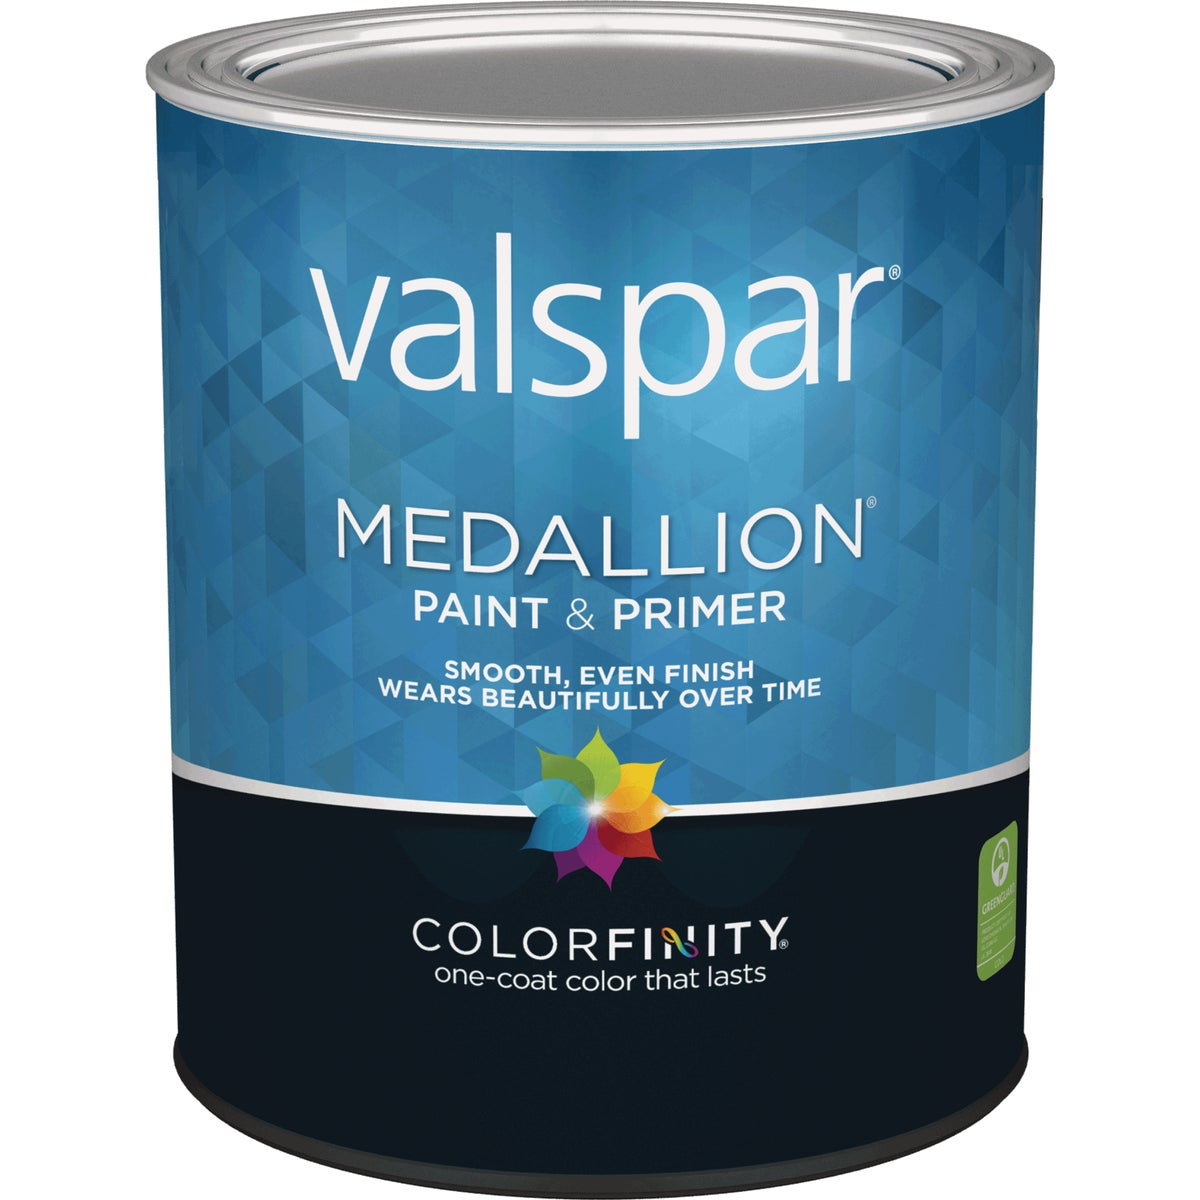 INT SAT WHITE PAINT - 027.0003400.005 by Valspar Corp